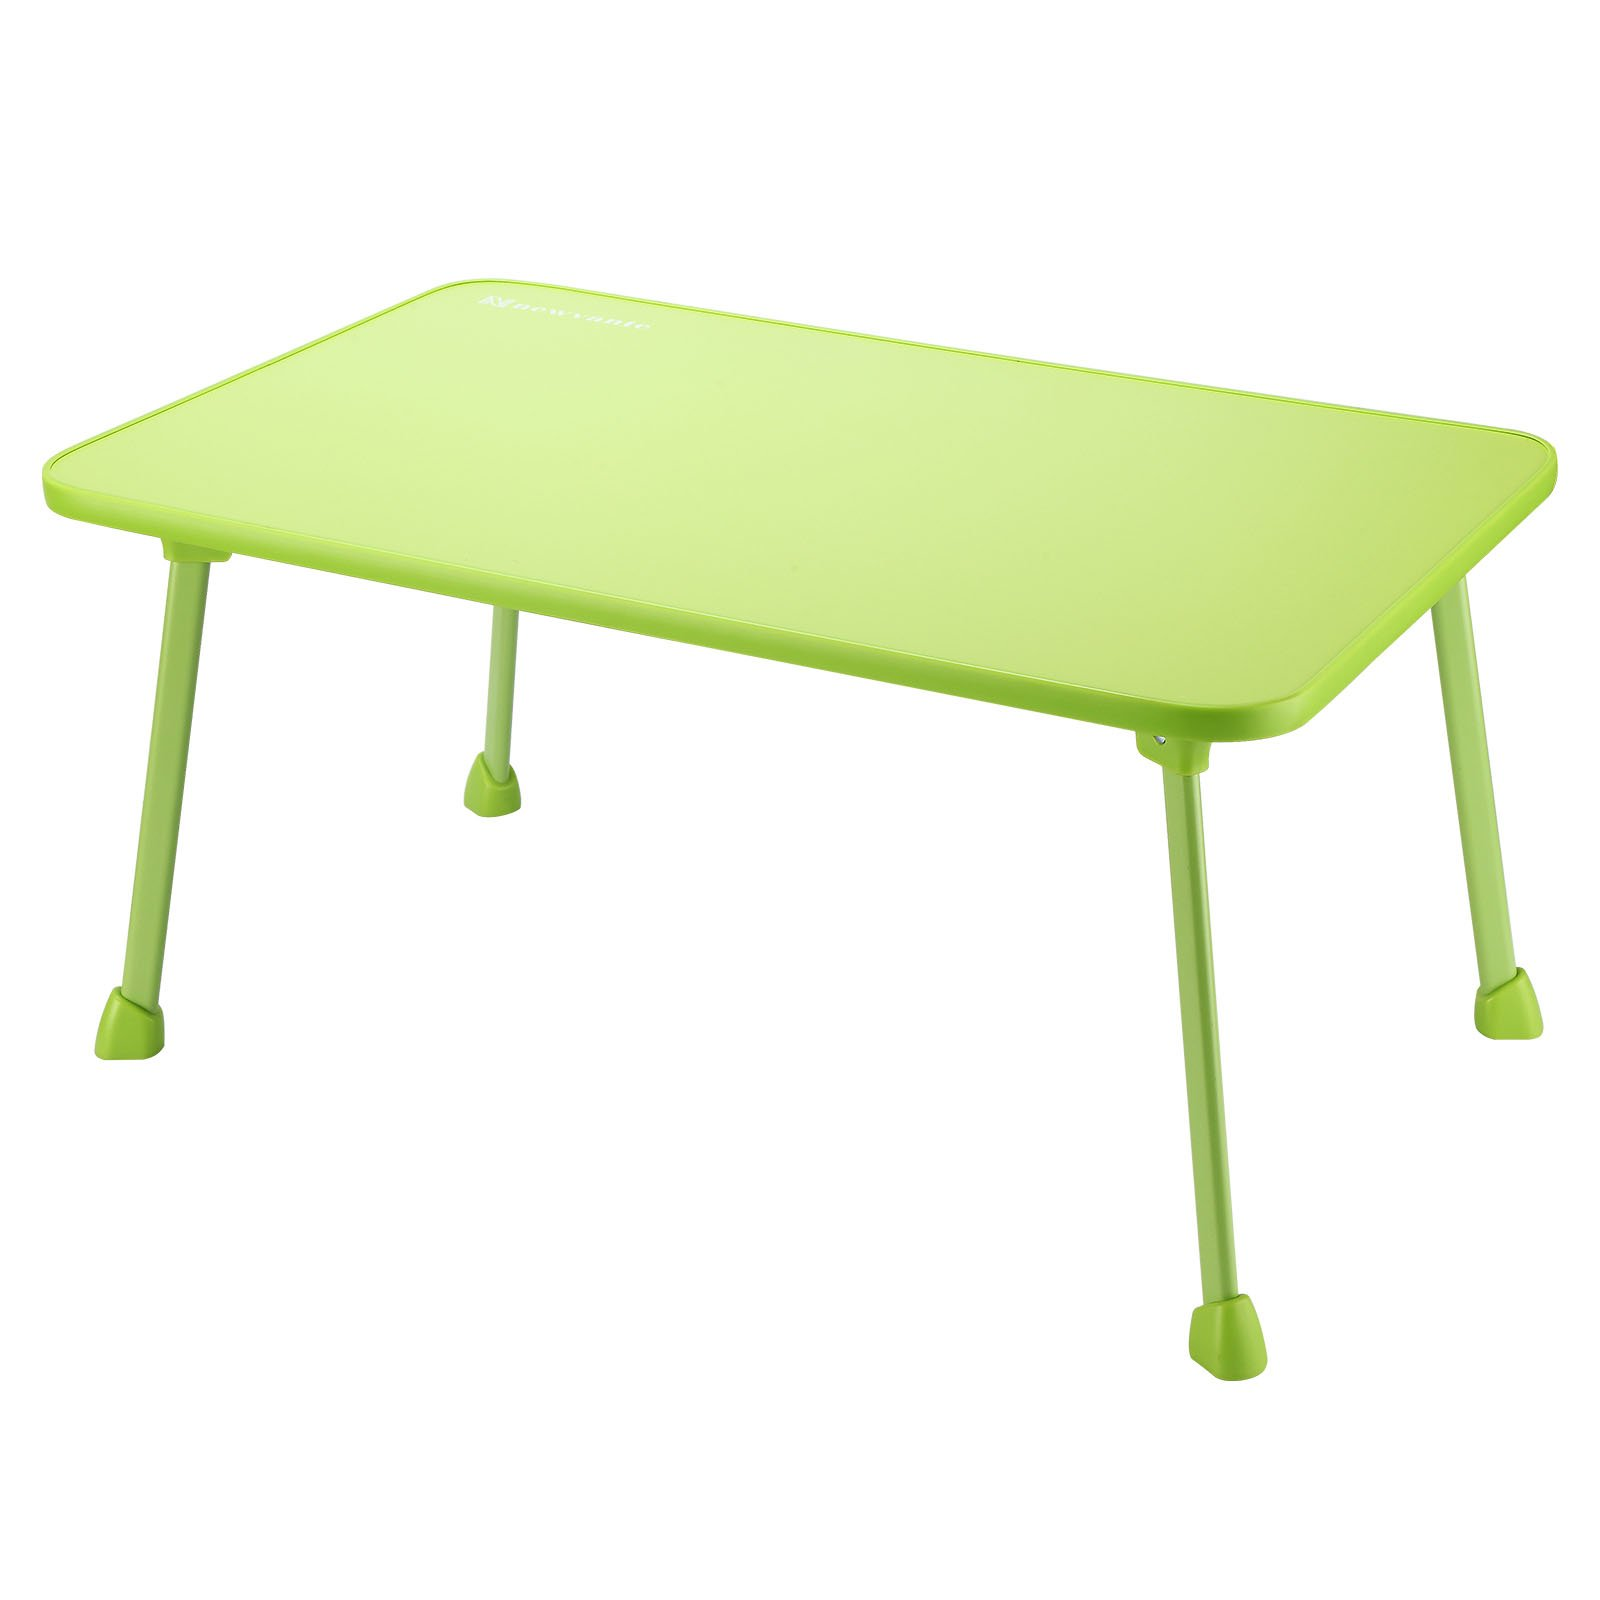 Laptop Bed Tray Table NNEWVANTE Foldable Laptop Bed Desk Lap Desk Portable Travel Table, Breakfast Tray with legs Colouring Desk for Bed Couch Floor, Adults Students Kids(Green)